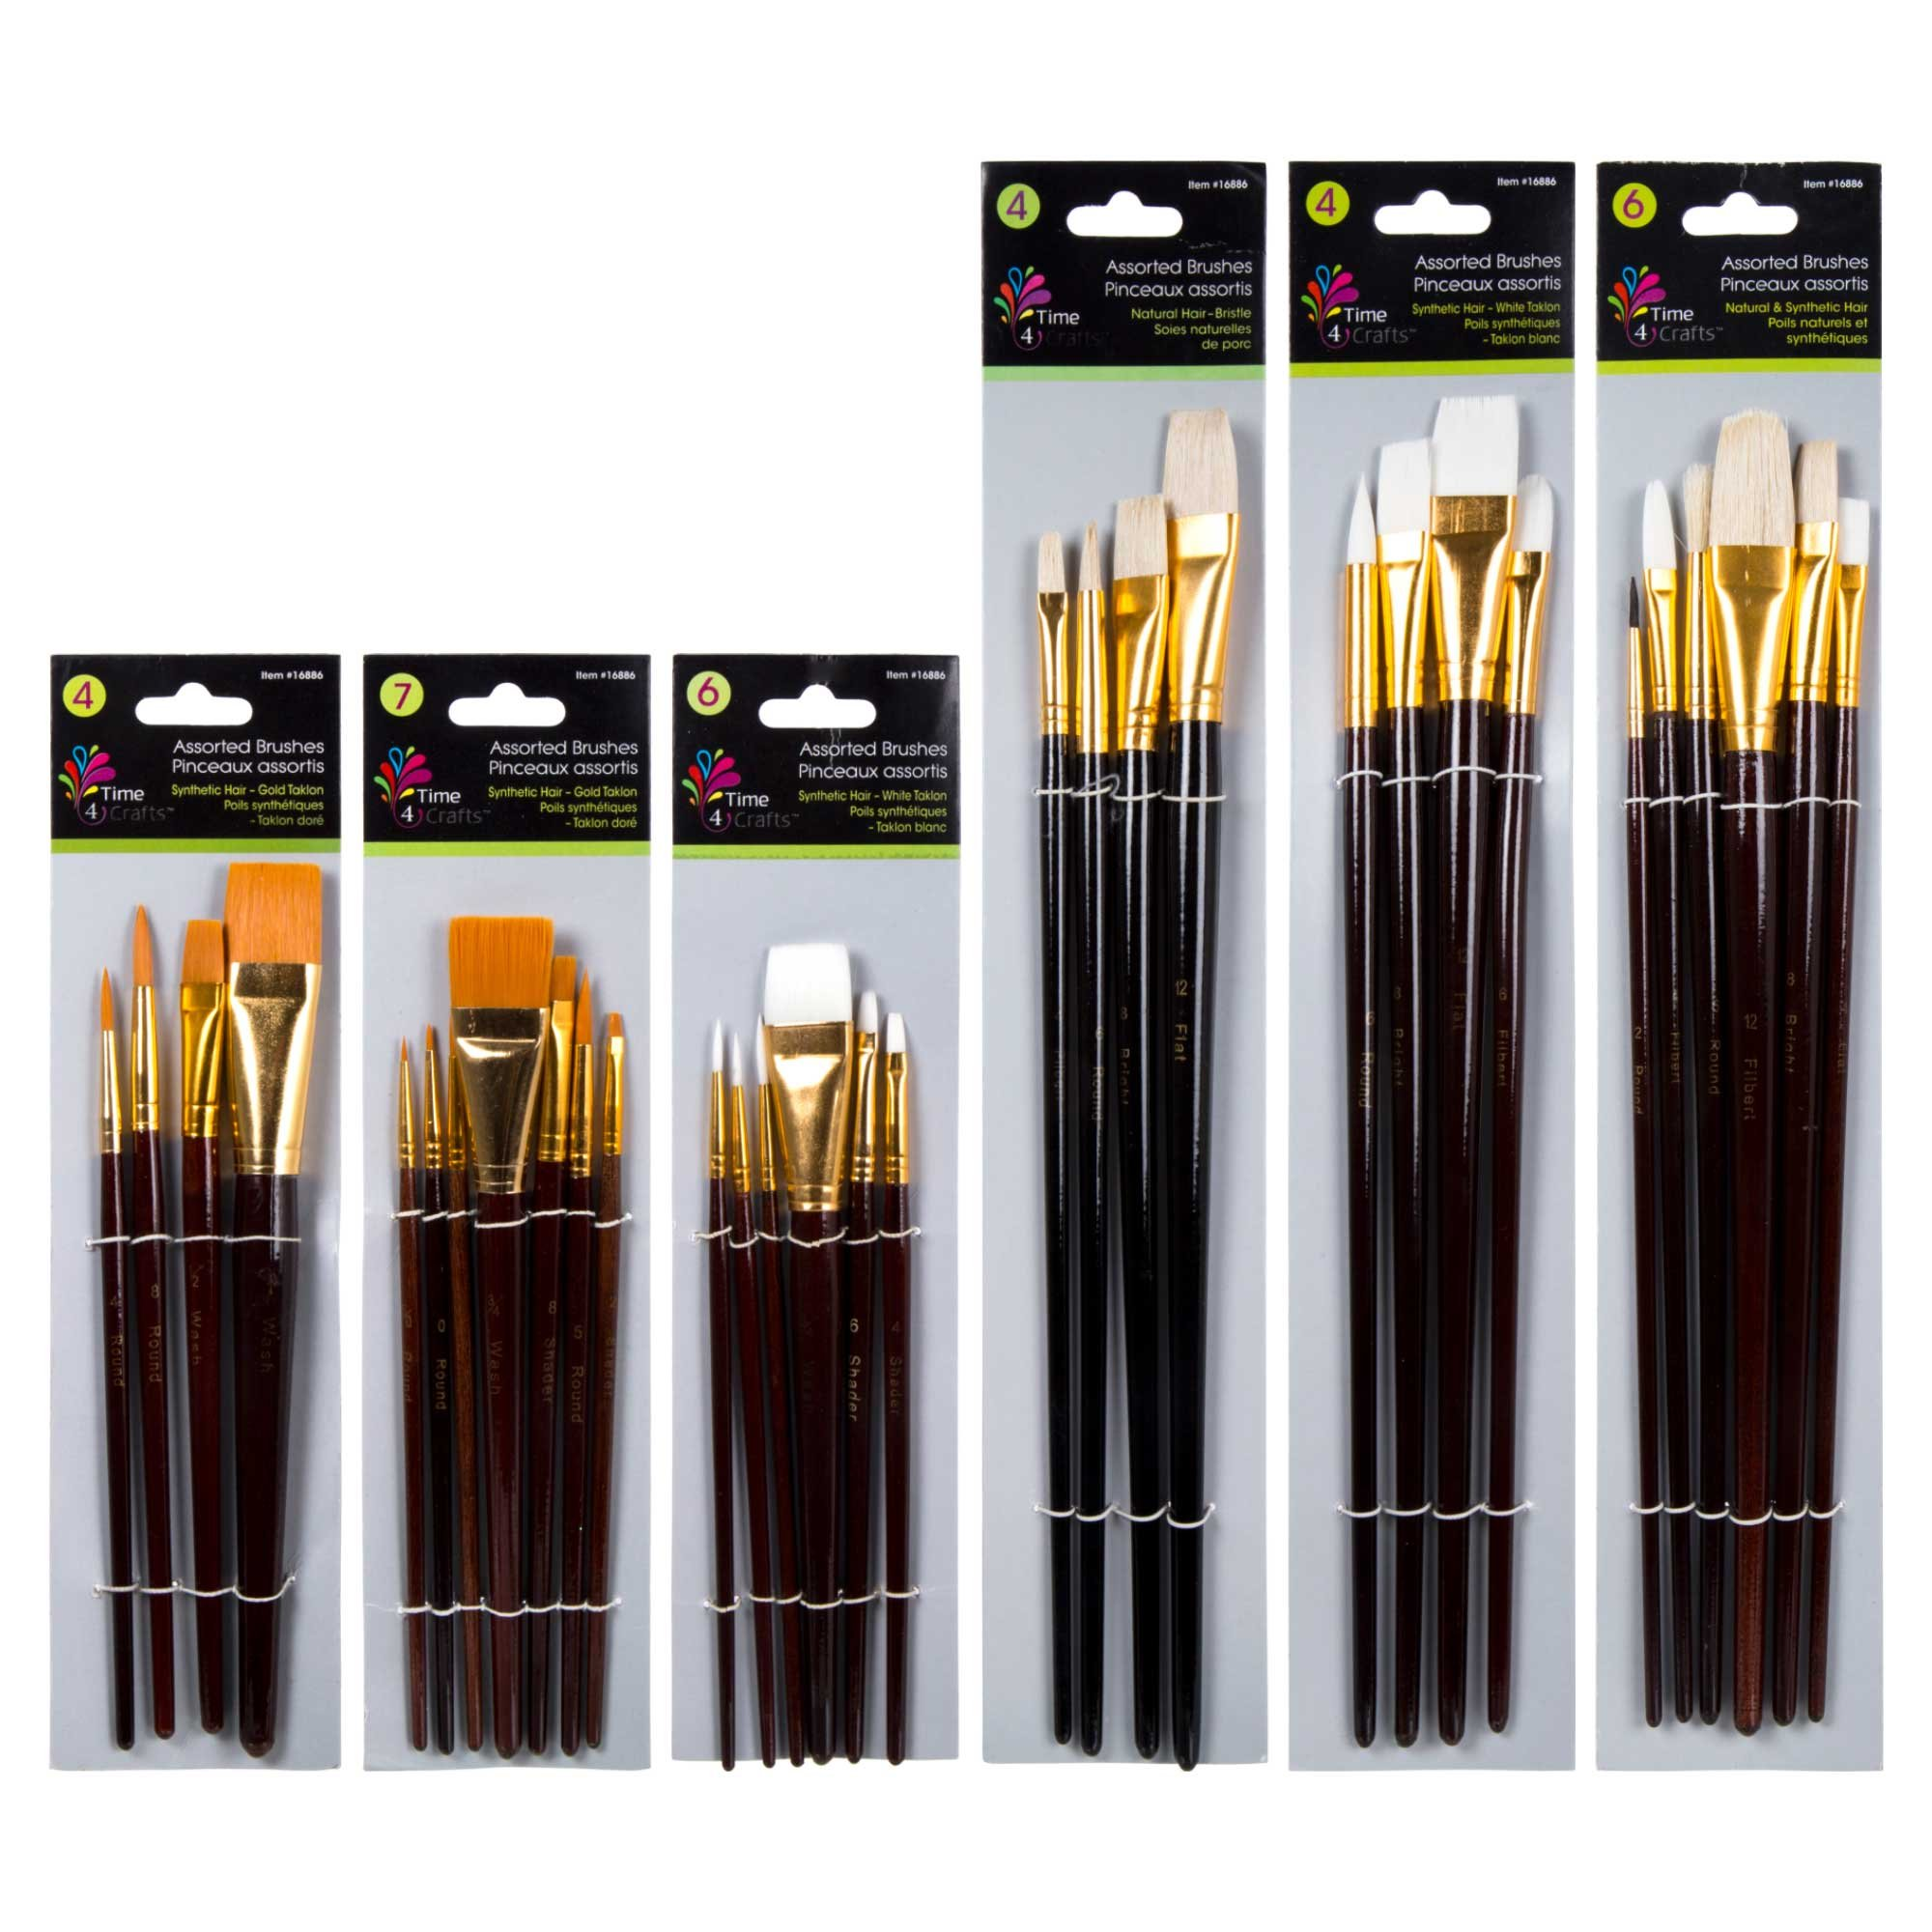 Time 4 Crafts Assorted Artist Brush Set, Pack of 36 9.5 x 15.5 x 6.5 Inches, White, Gold, 36 Piece